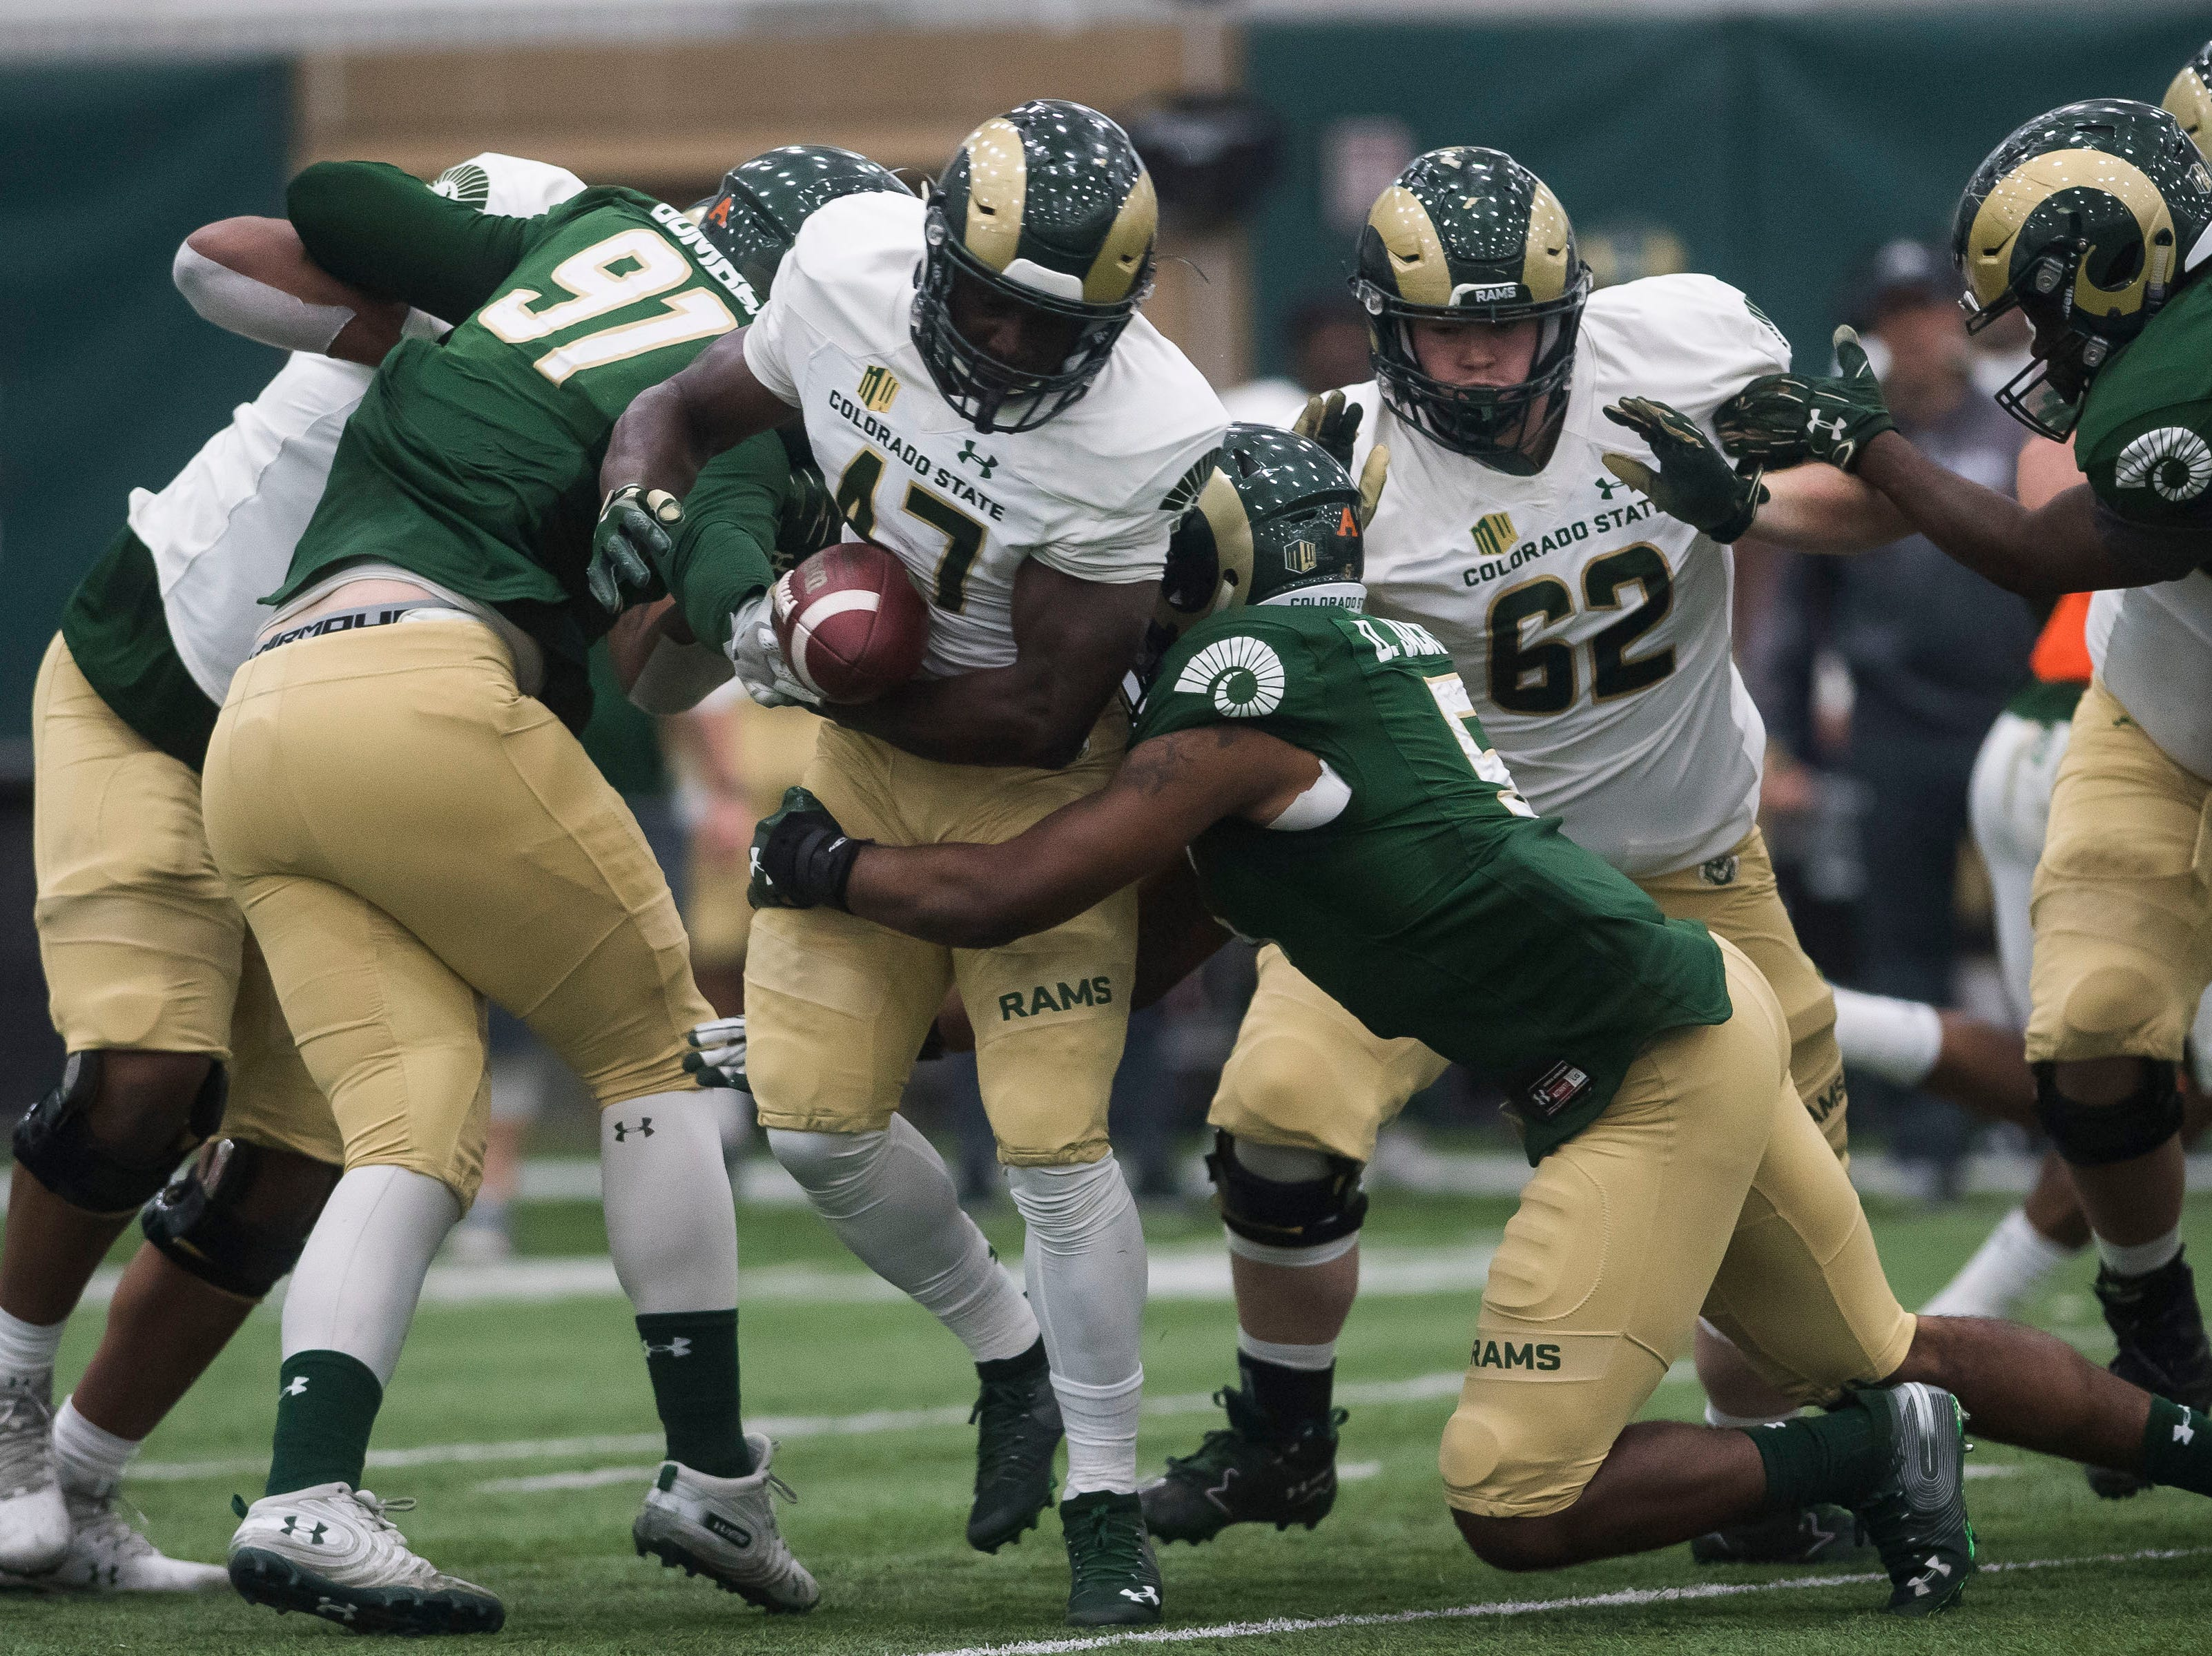 CSU freshman running back David Aggrey (47) nearly loses the ball while being tackled by sophomore linebacker Dequan Jackson (5) during CSU's Spring game on Thursday, March 14, 2019, at their indoor practice facility in Fort Collins, Colo.